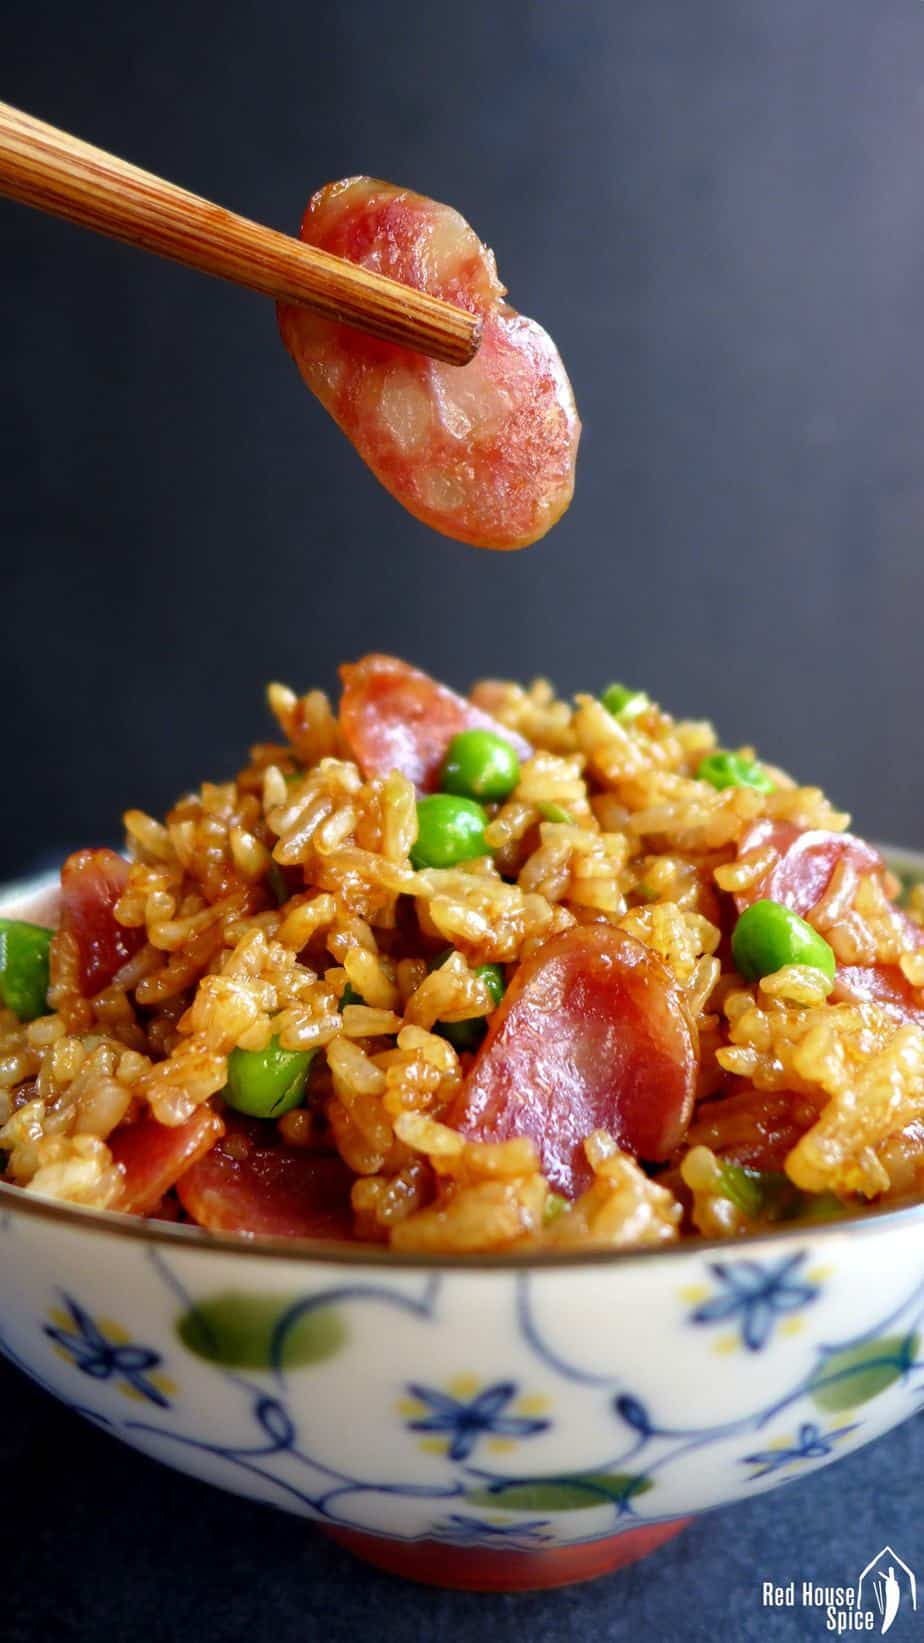 Fried rice with sliced Chinese sausage